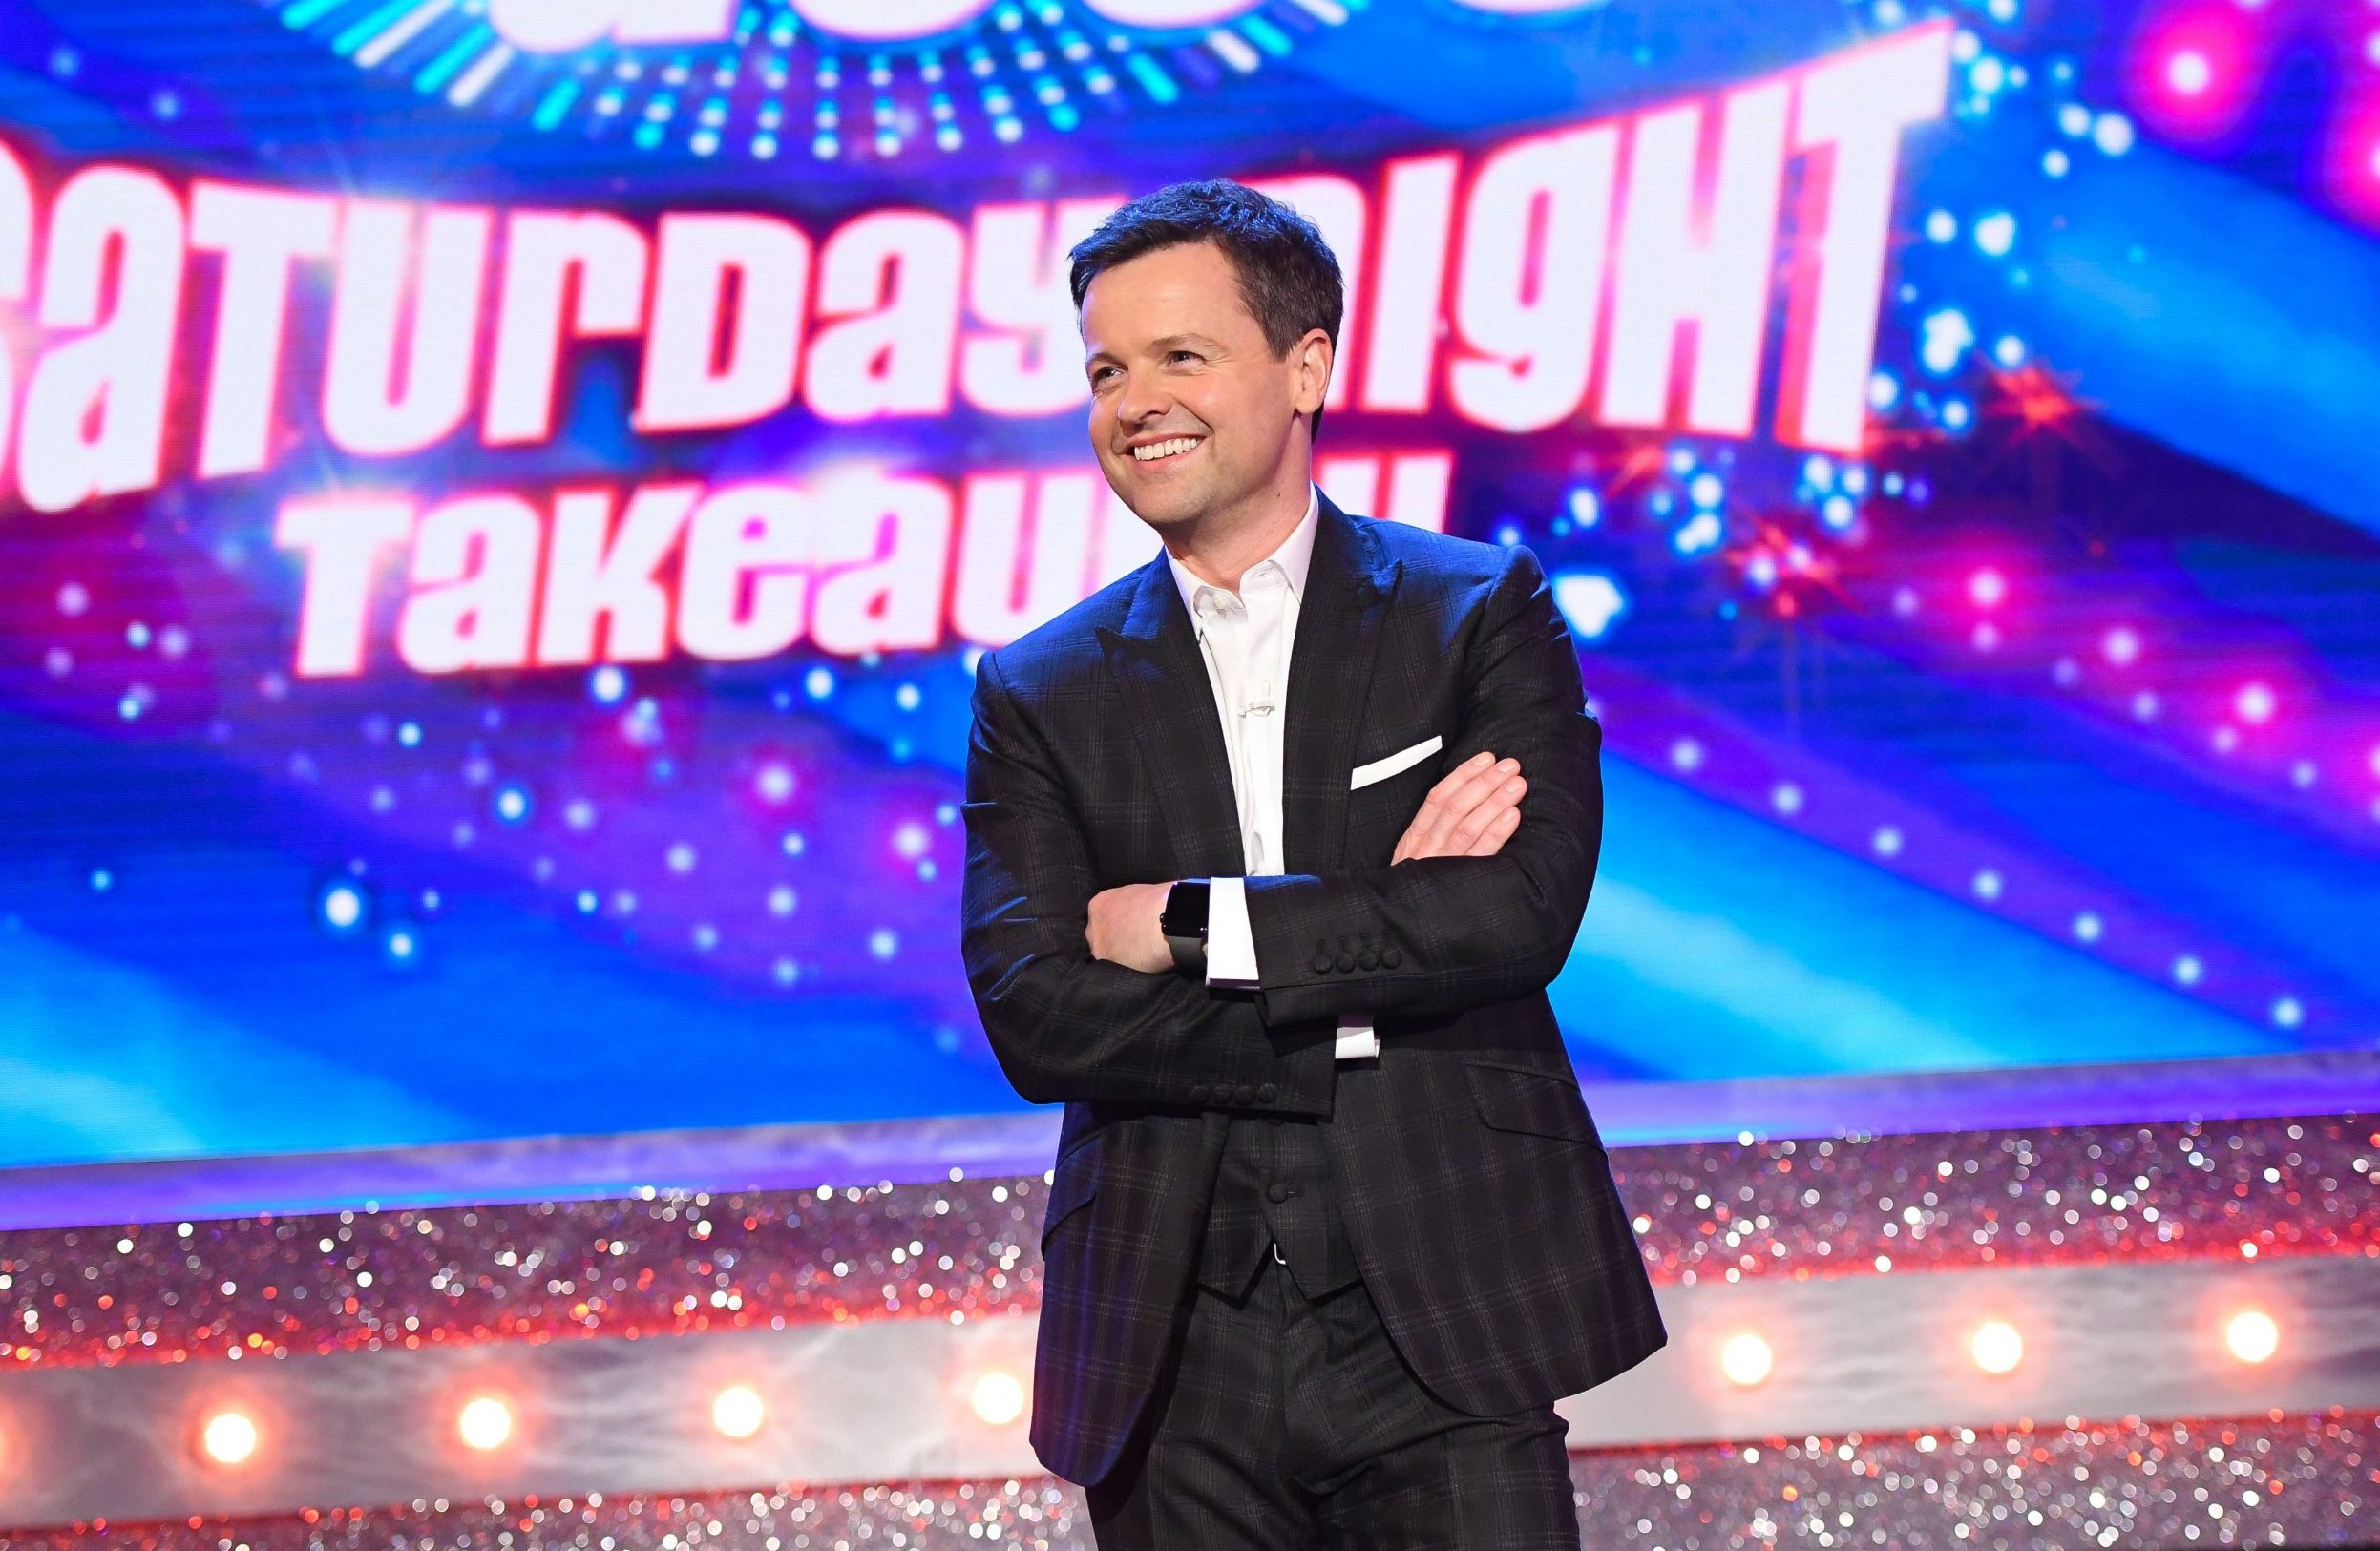 Editorial Use Only. No merchandising Mandatory Credit: Photo by Kieron McCarron/REX/Shutterstock (9485884c) Declan Donnelly Ant & Dec's Saturday Night Takeaway' TV Show, Series 15, Episode 6, London, UK - 31 Mar 2018